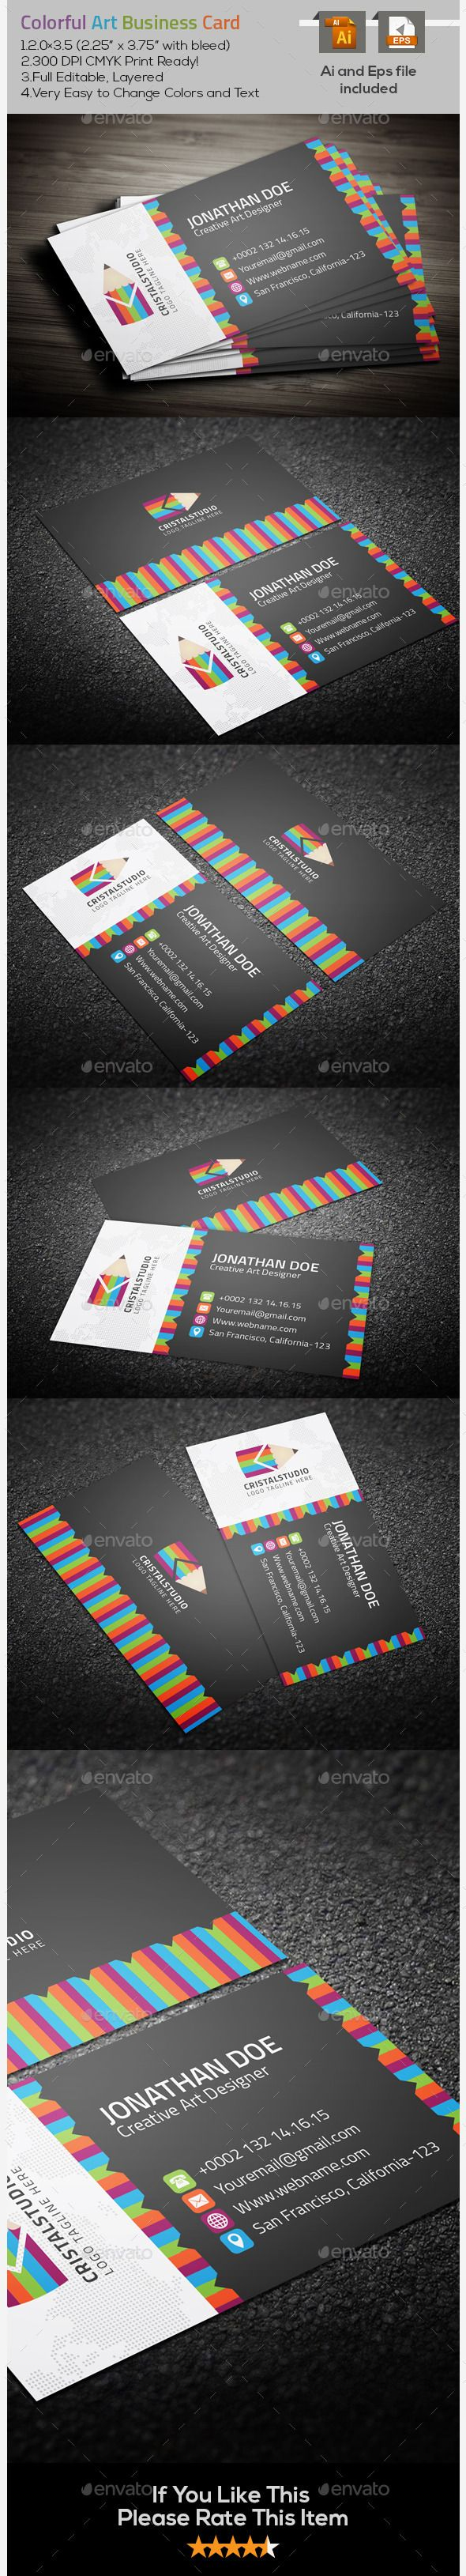 226 best business cards images on Pinterest | Business card design ...